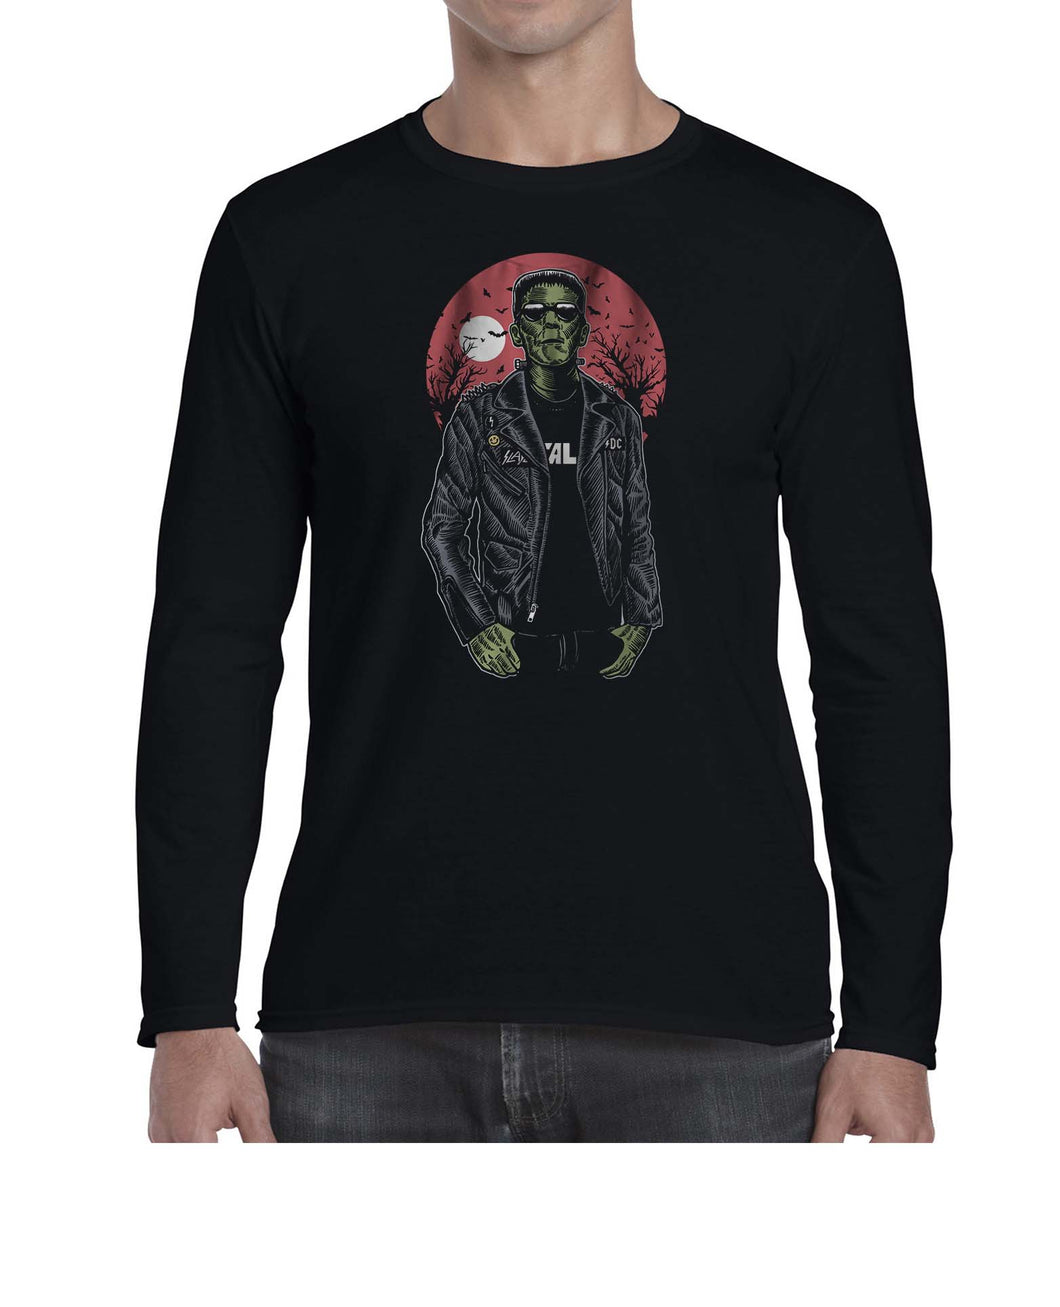 Franken Rockstar Music Inspired Halloween Long Sleeve Tshirt Shirt Mens Unisex 3302